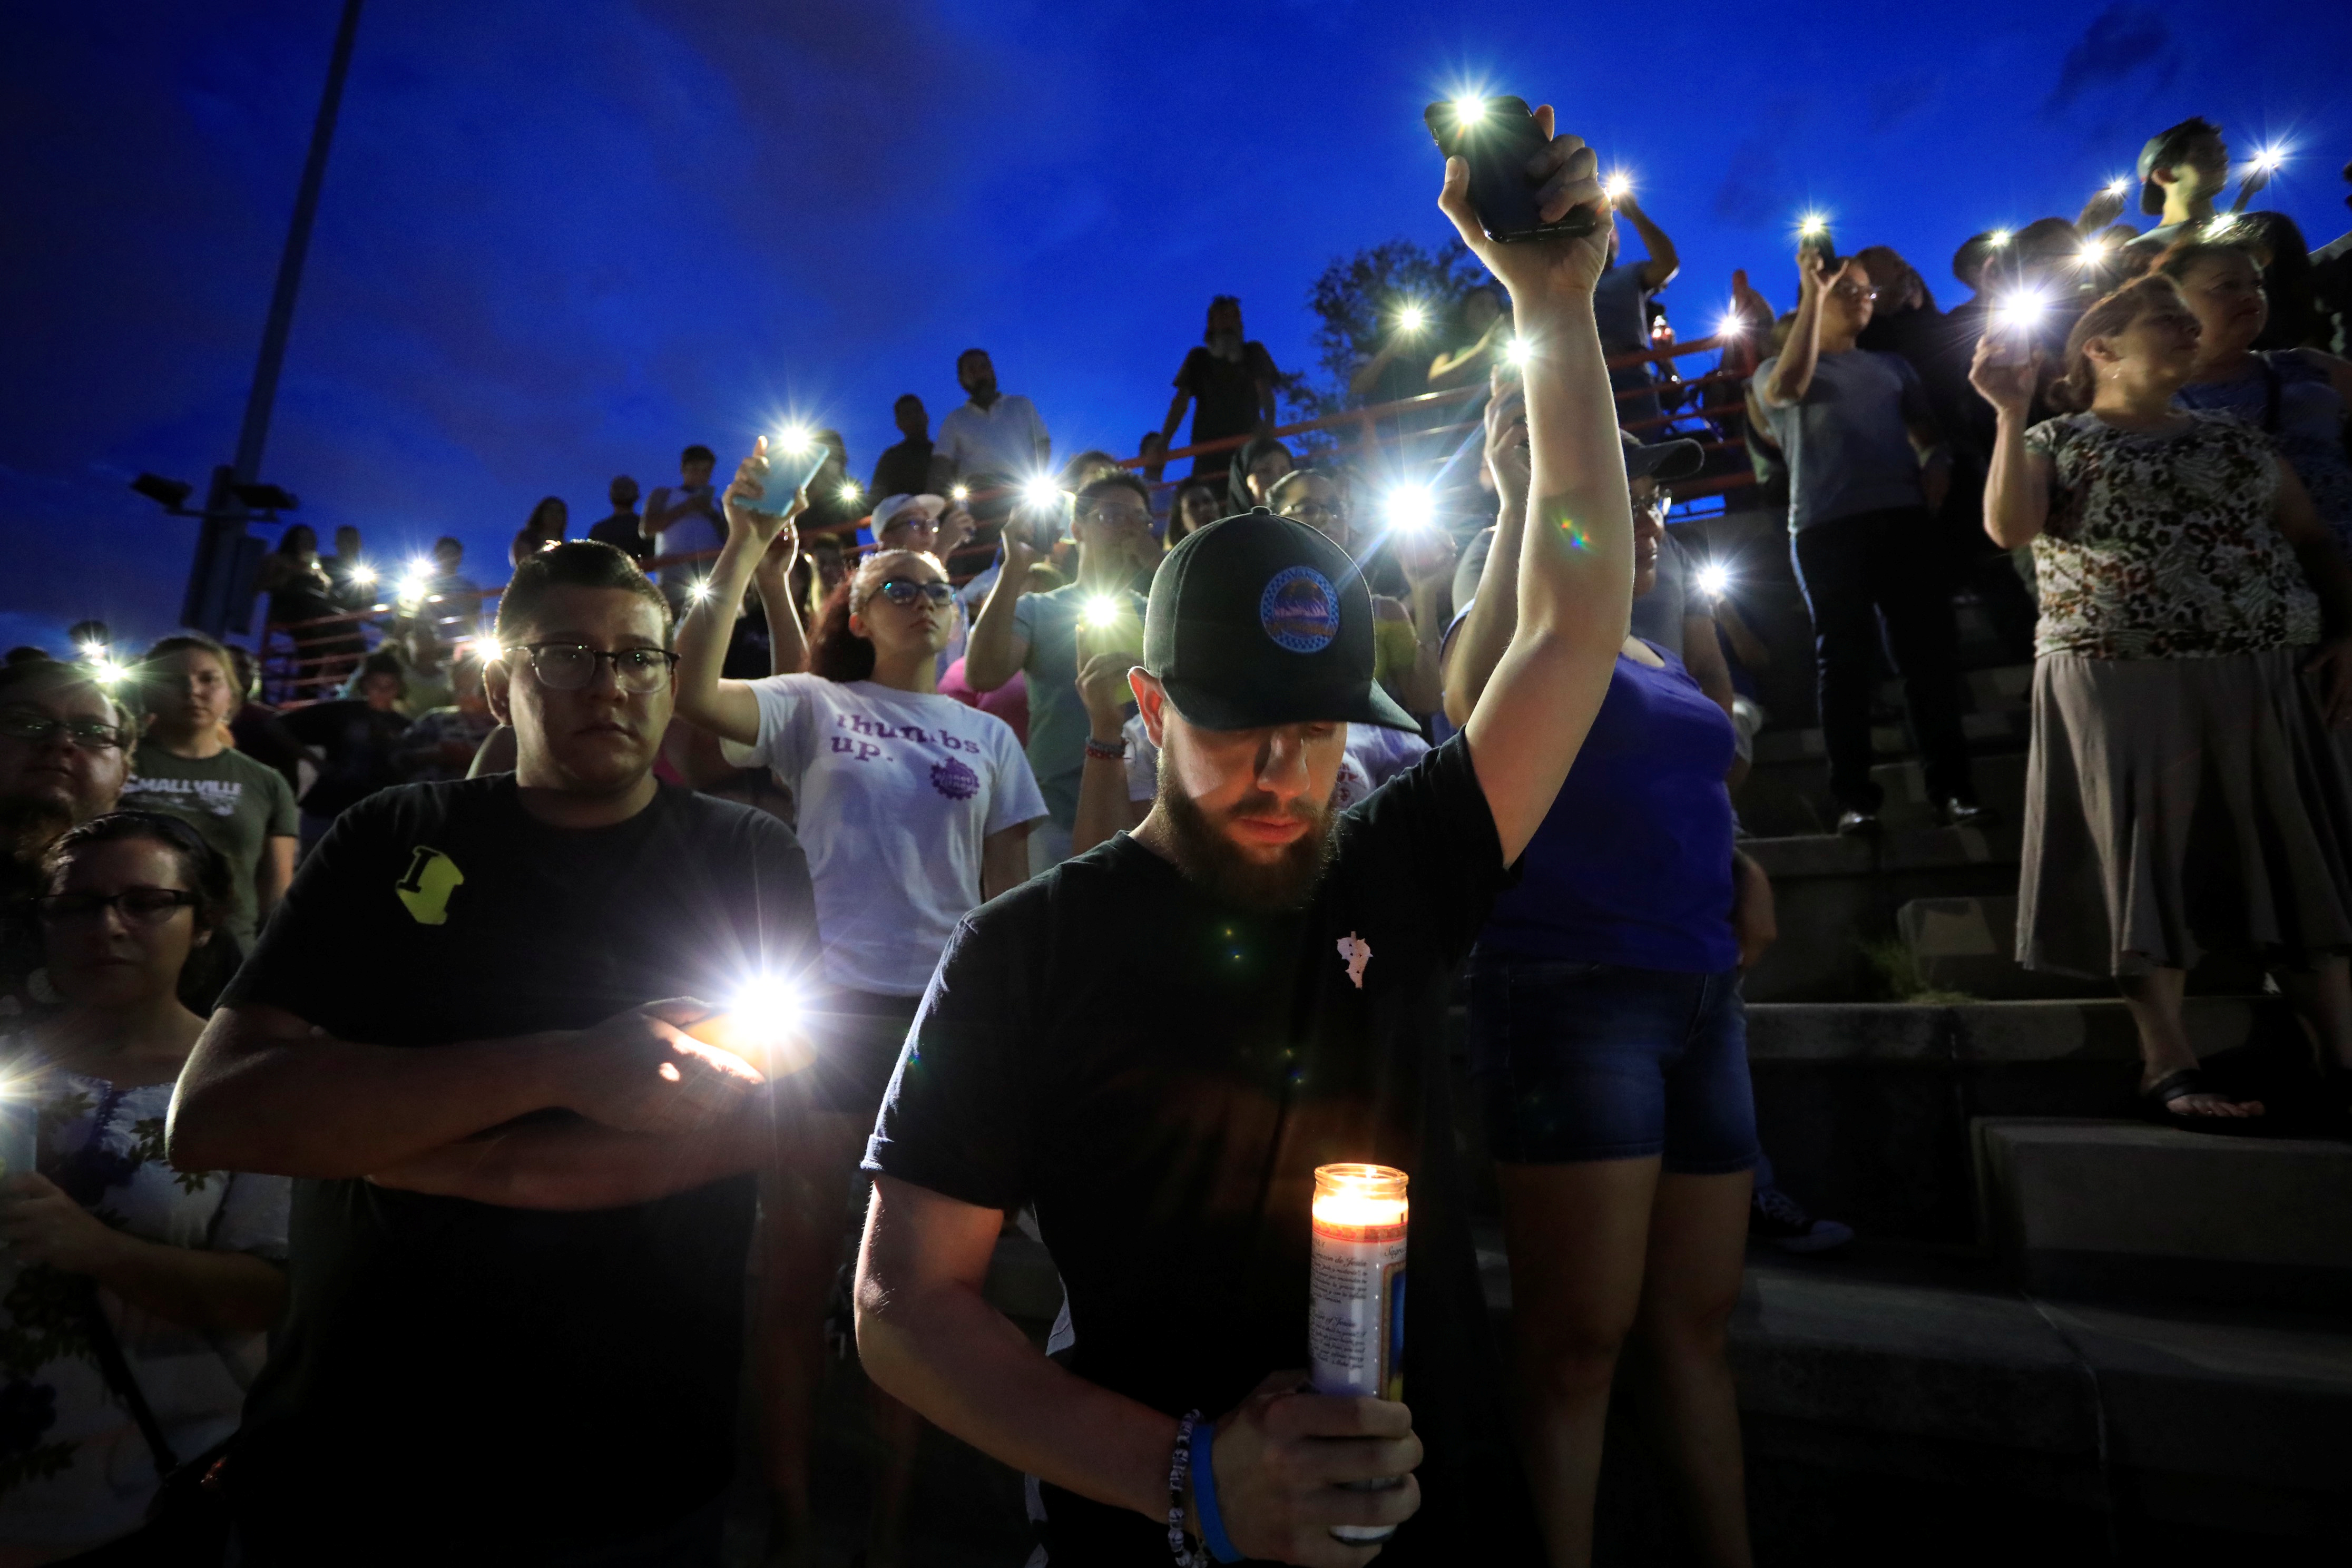 Mourners take part in a vigil at El Paso High School after a mass shooting at a Walmart store in El Paso